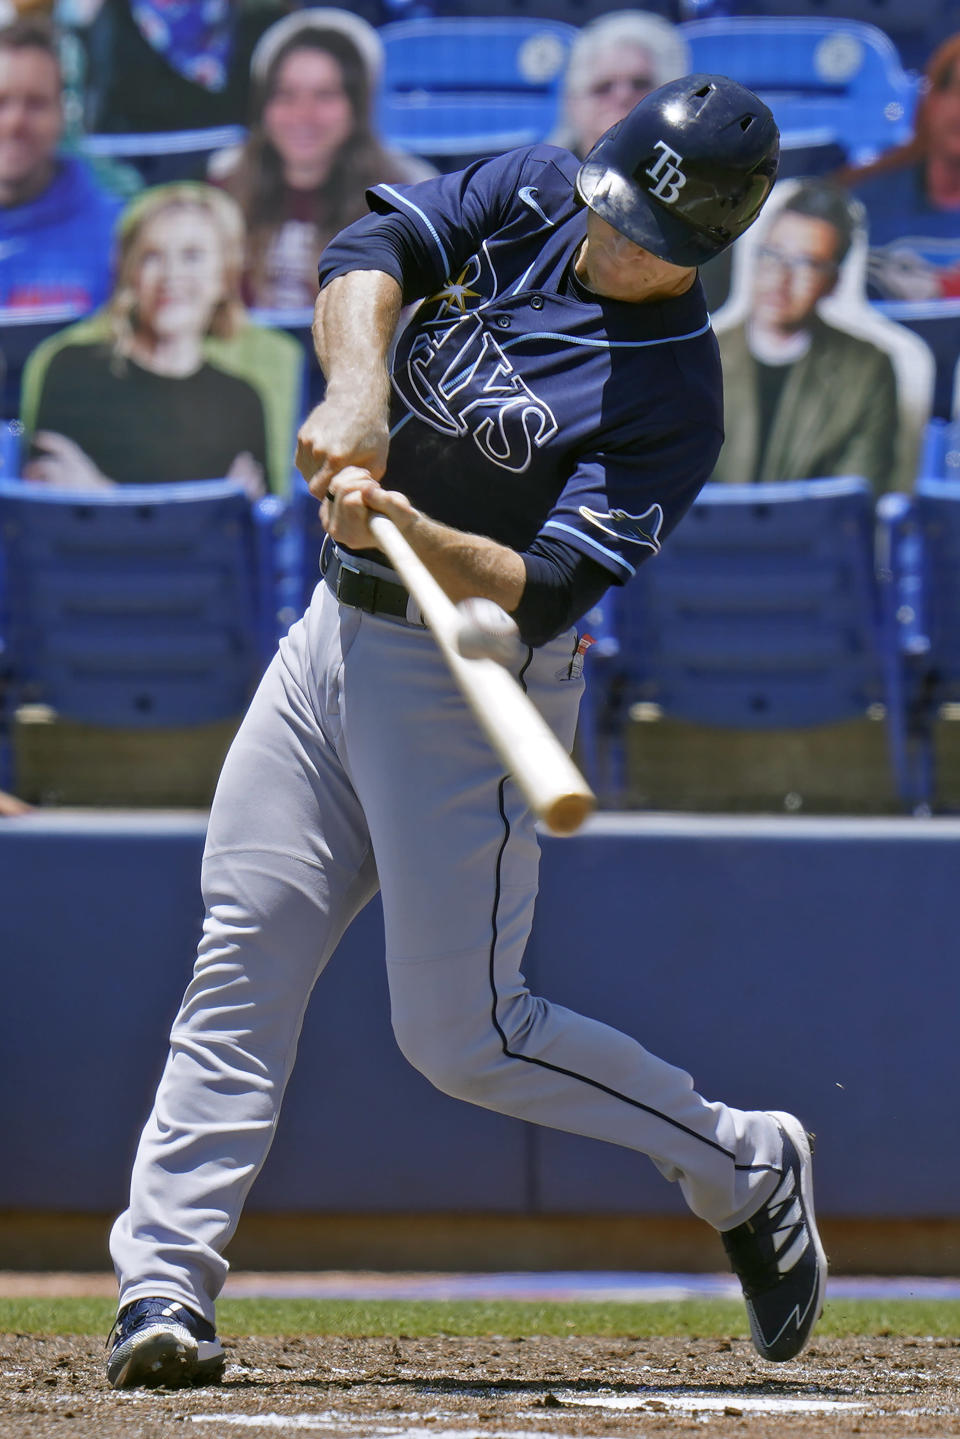 Tampa Bay Rays' Joey Wendle connects for a grand slam off Toronto Blue Jays starting pitcher Trent Thornton during the first inning of a baseball game Monday, May 24, 2021, in Dunedin, Fla. (AP Photo/Chris O'Meara)